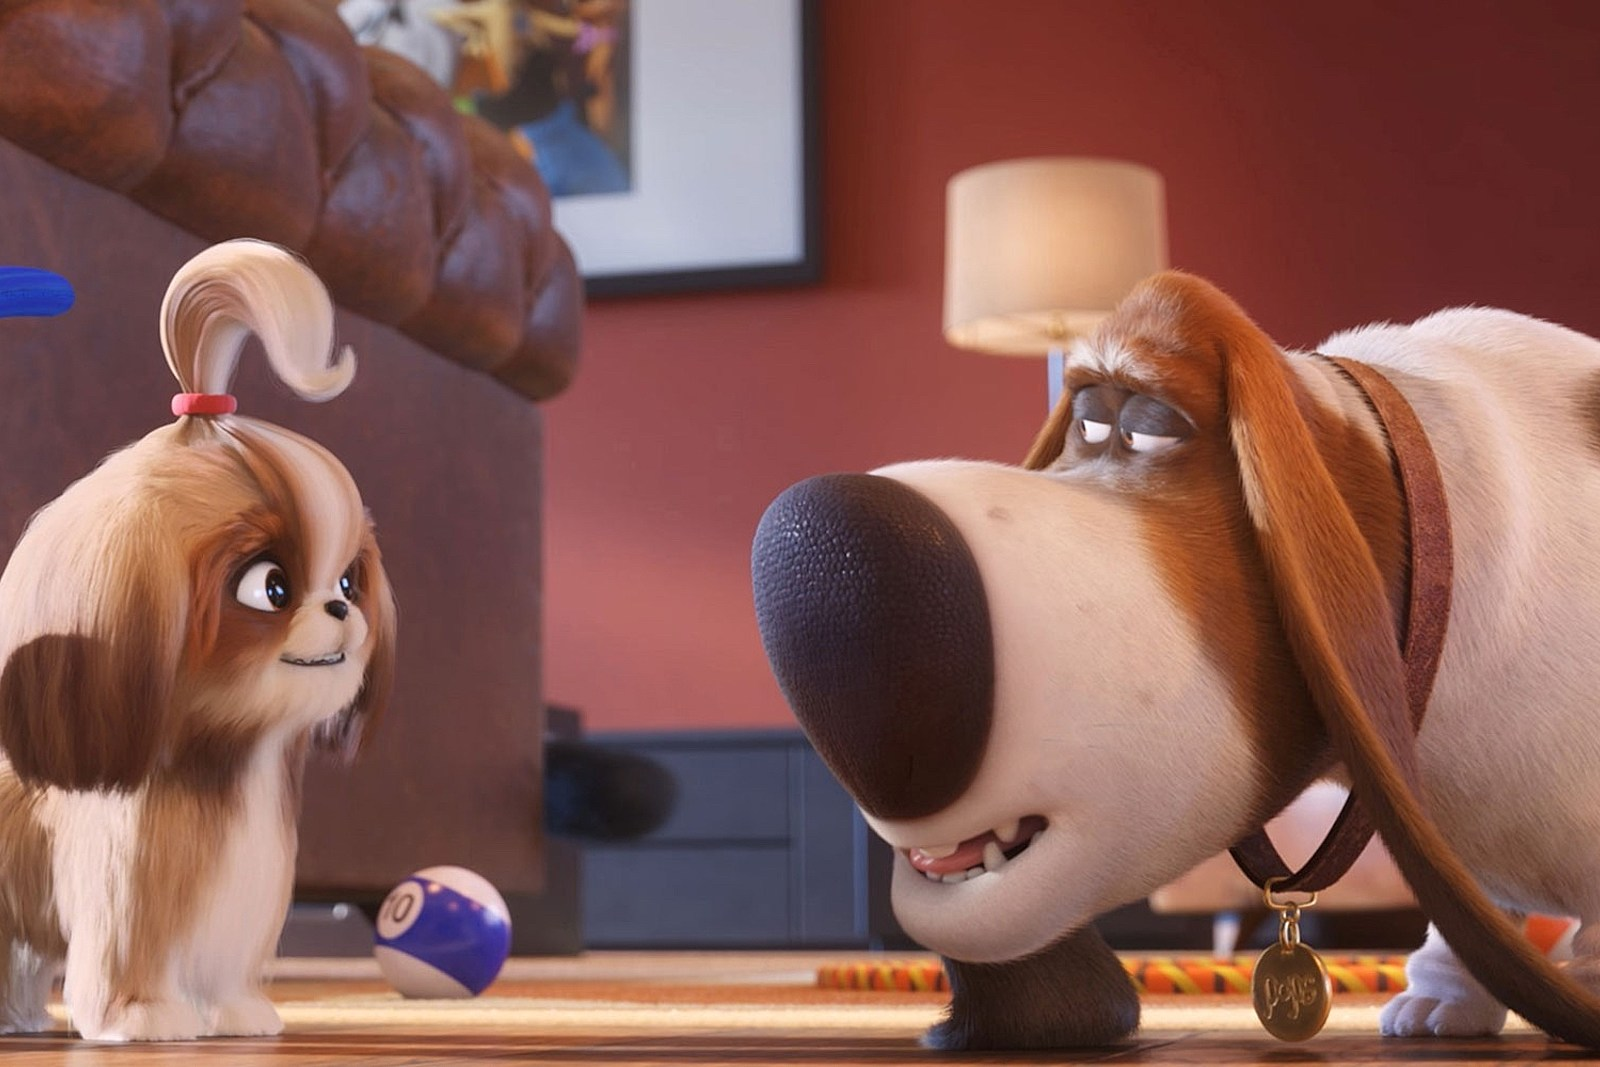 Interview Director Chris Renaud On The Secret Life Of Pets 2